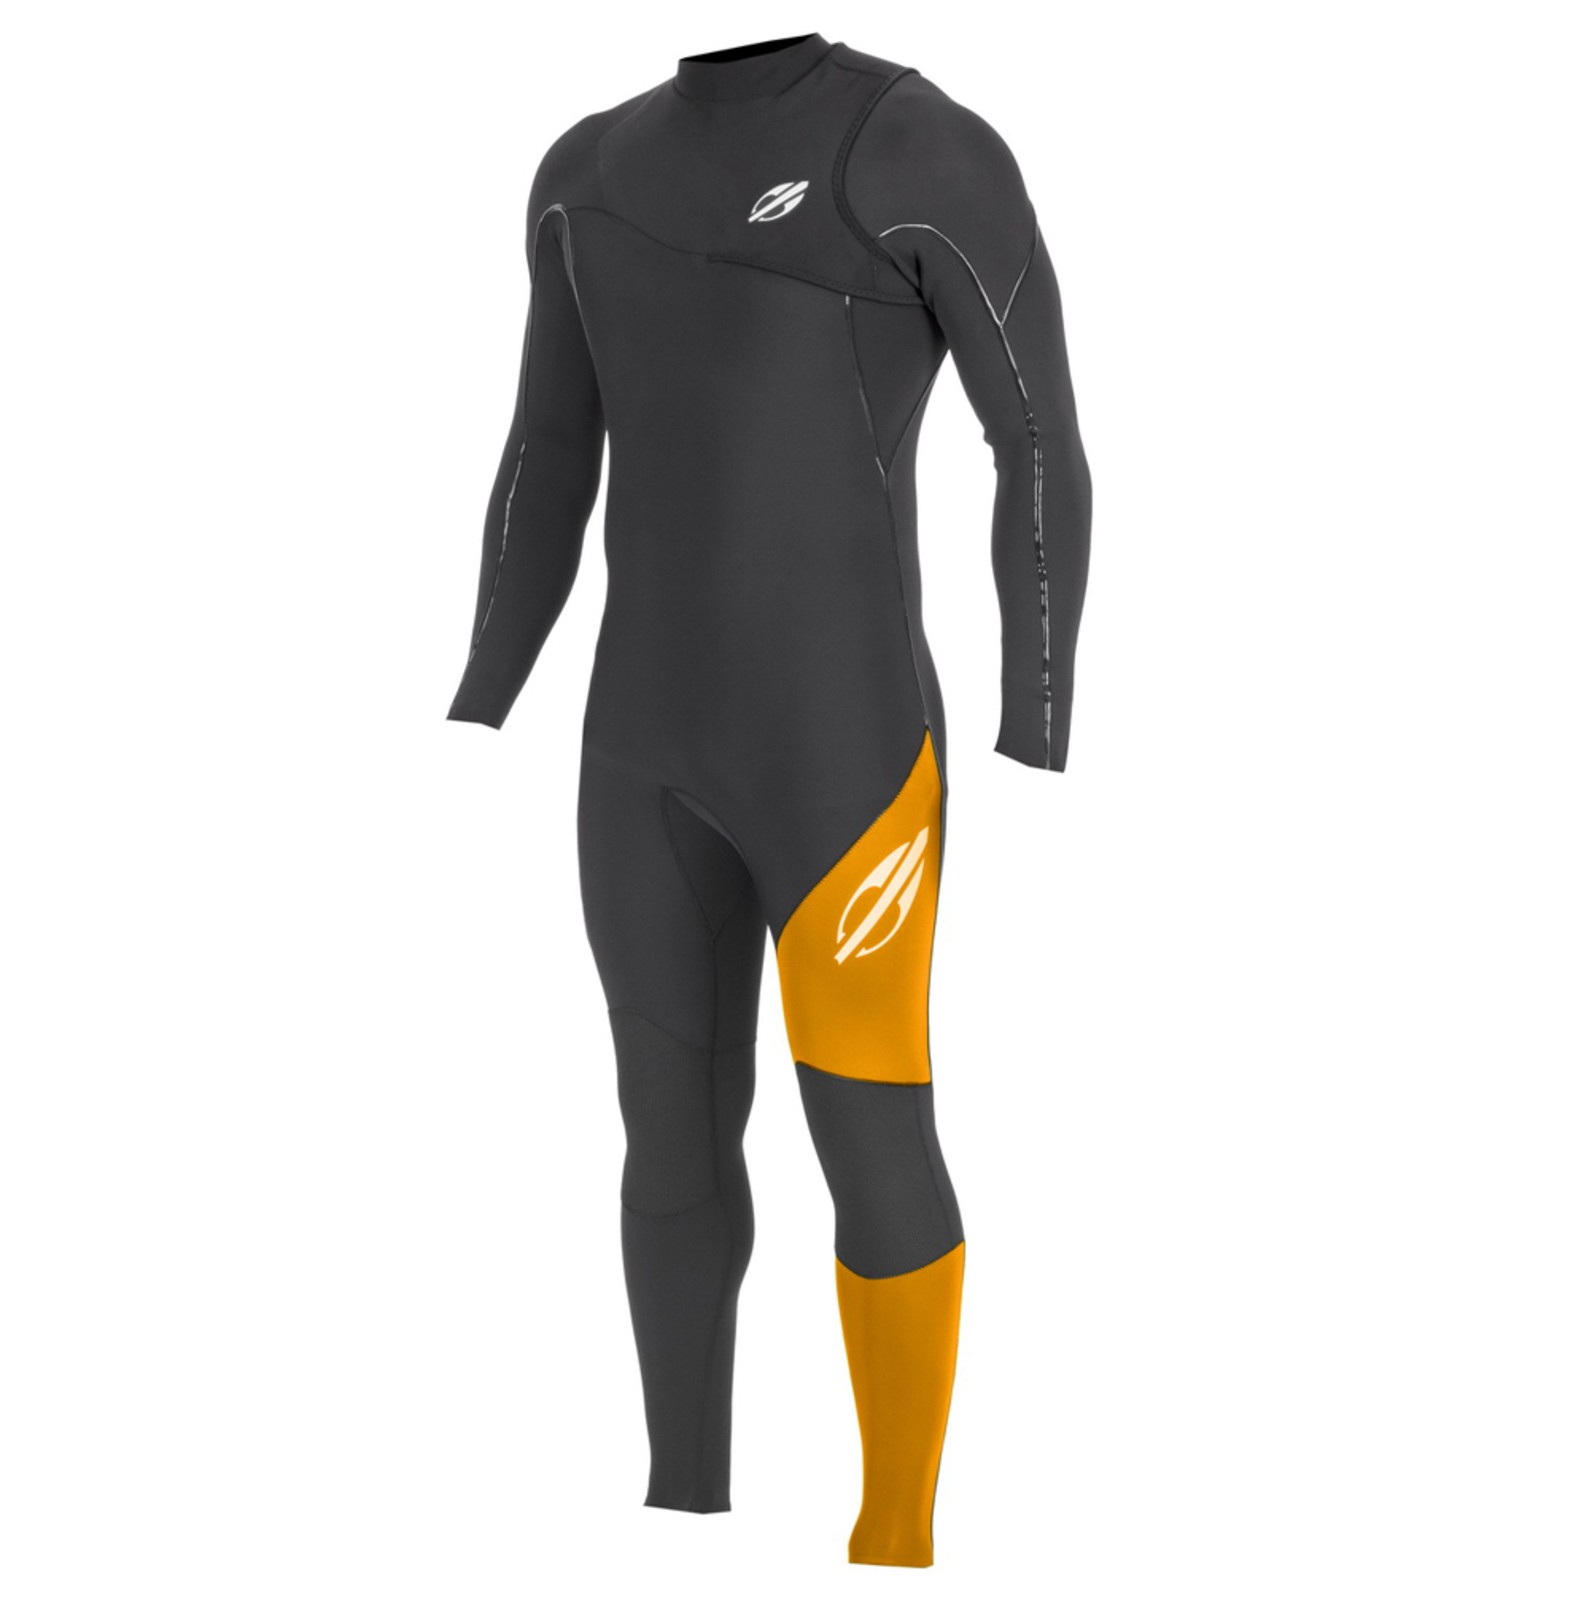 Long John Neoprene Masculino Mormaii Flexxxa Pro 3.2mm Vedado